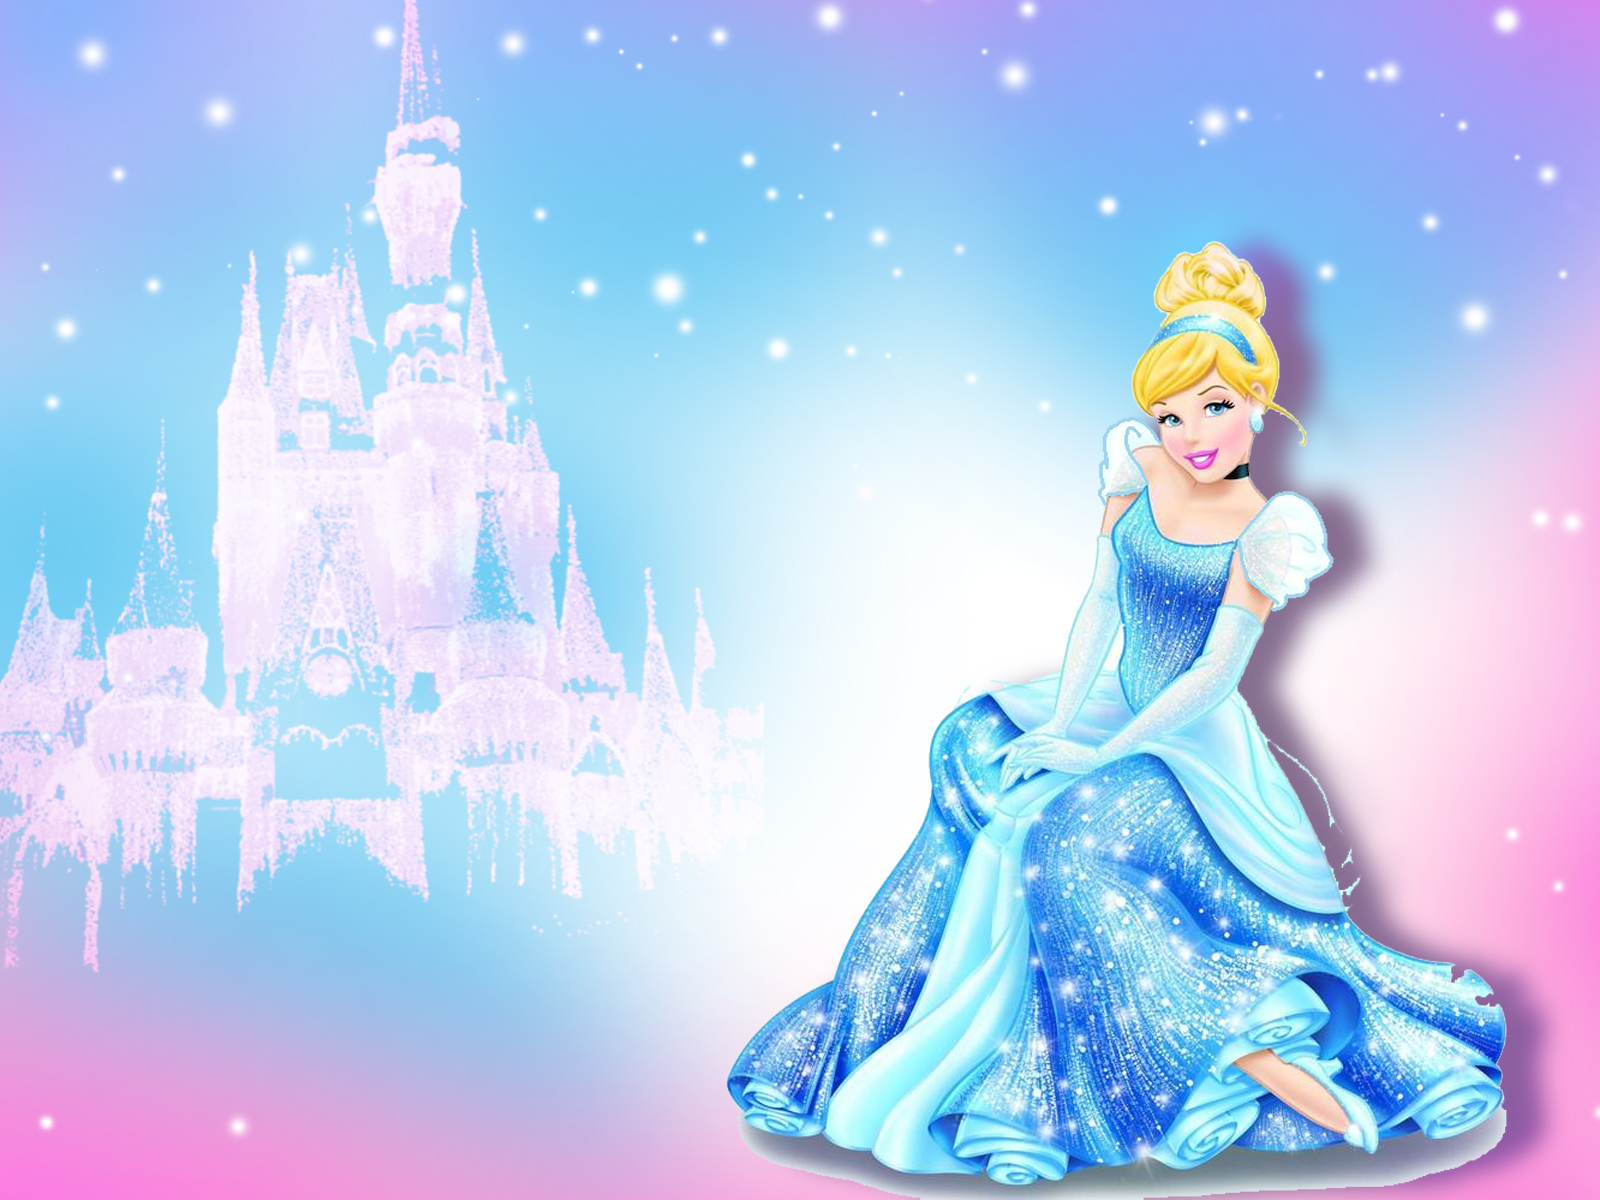 Cinderella vs cinderella 2015 images cinderella wallpaper hd cinderella vs cinderella 2015 images cinderella wallpaper hd wallpaper and background photos thecheapjerseys